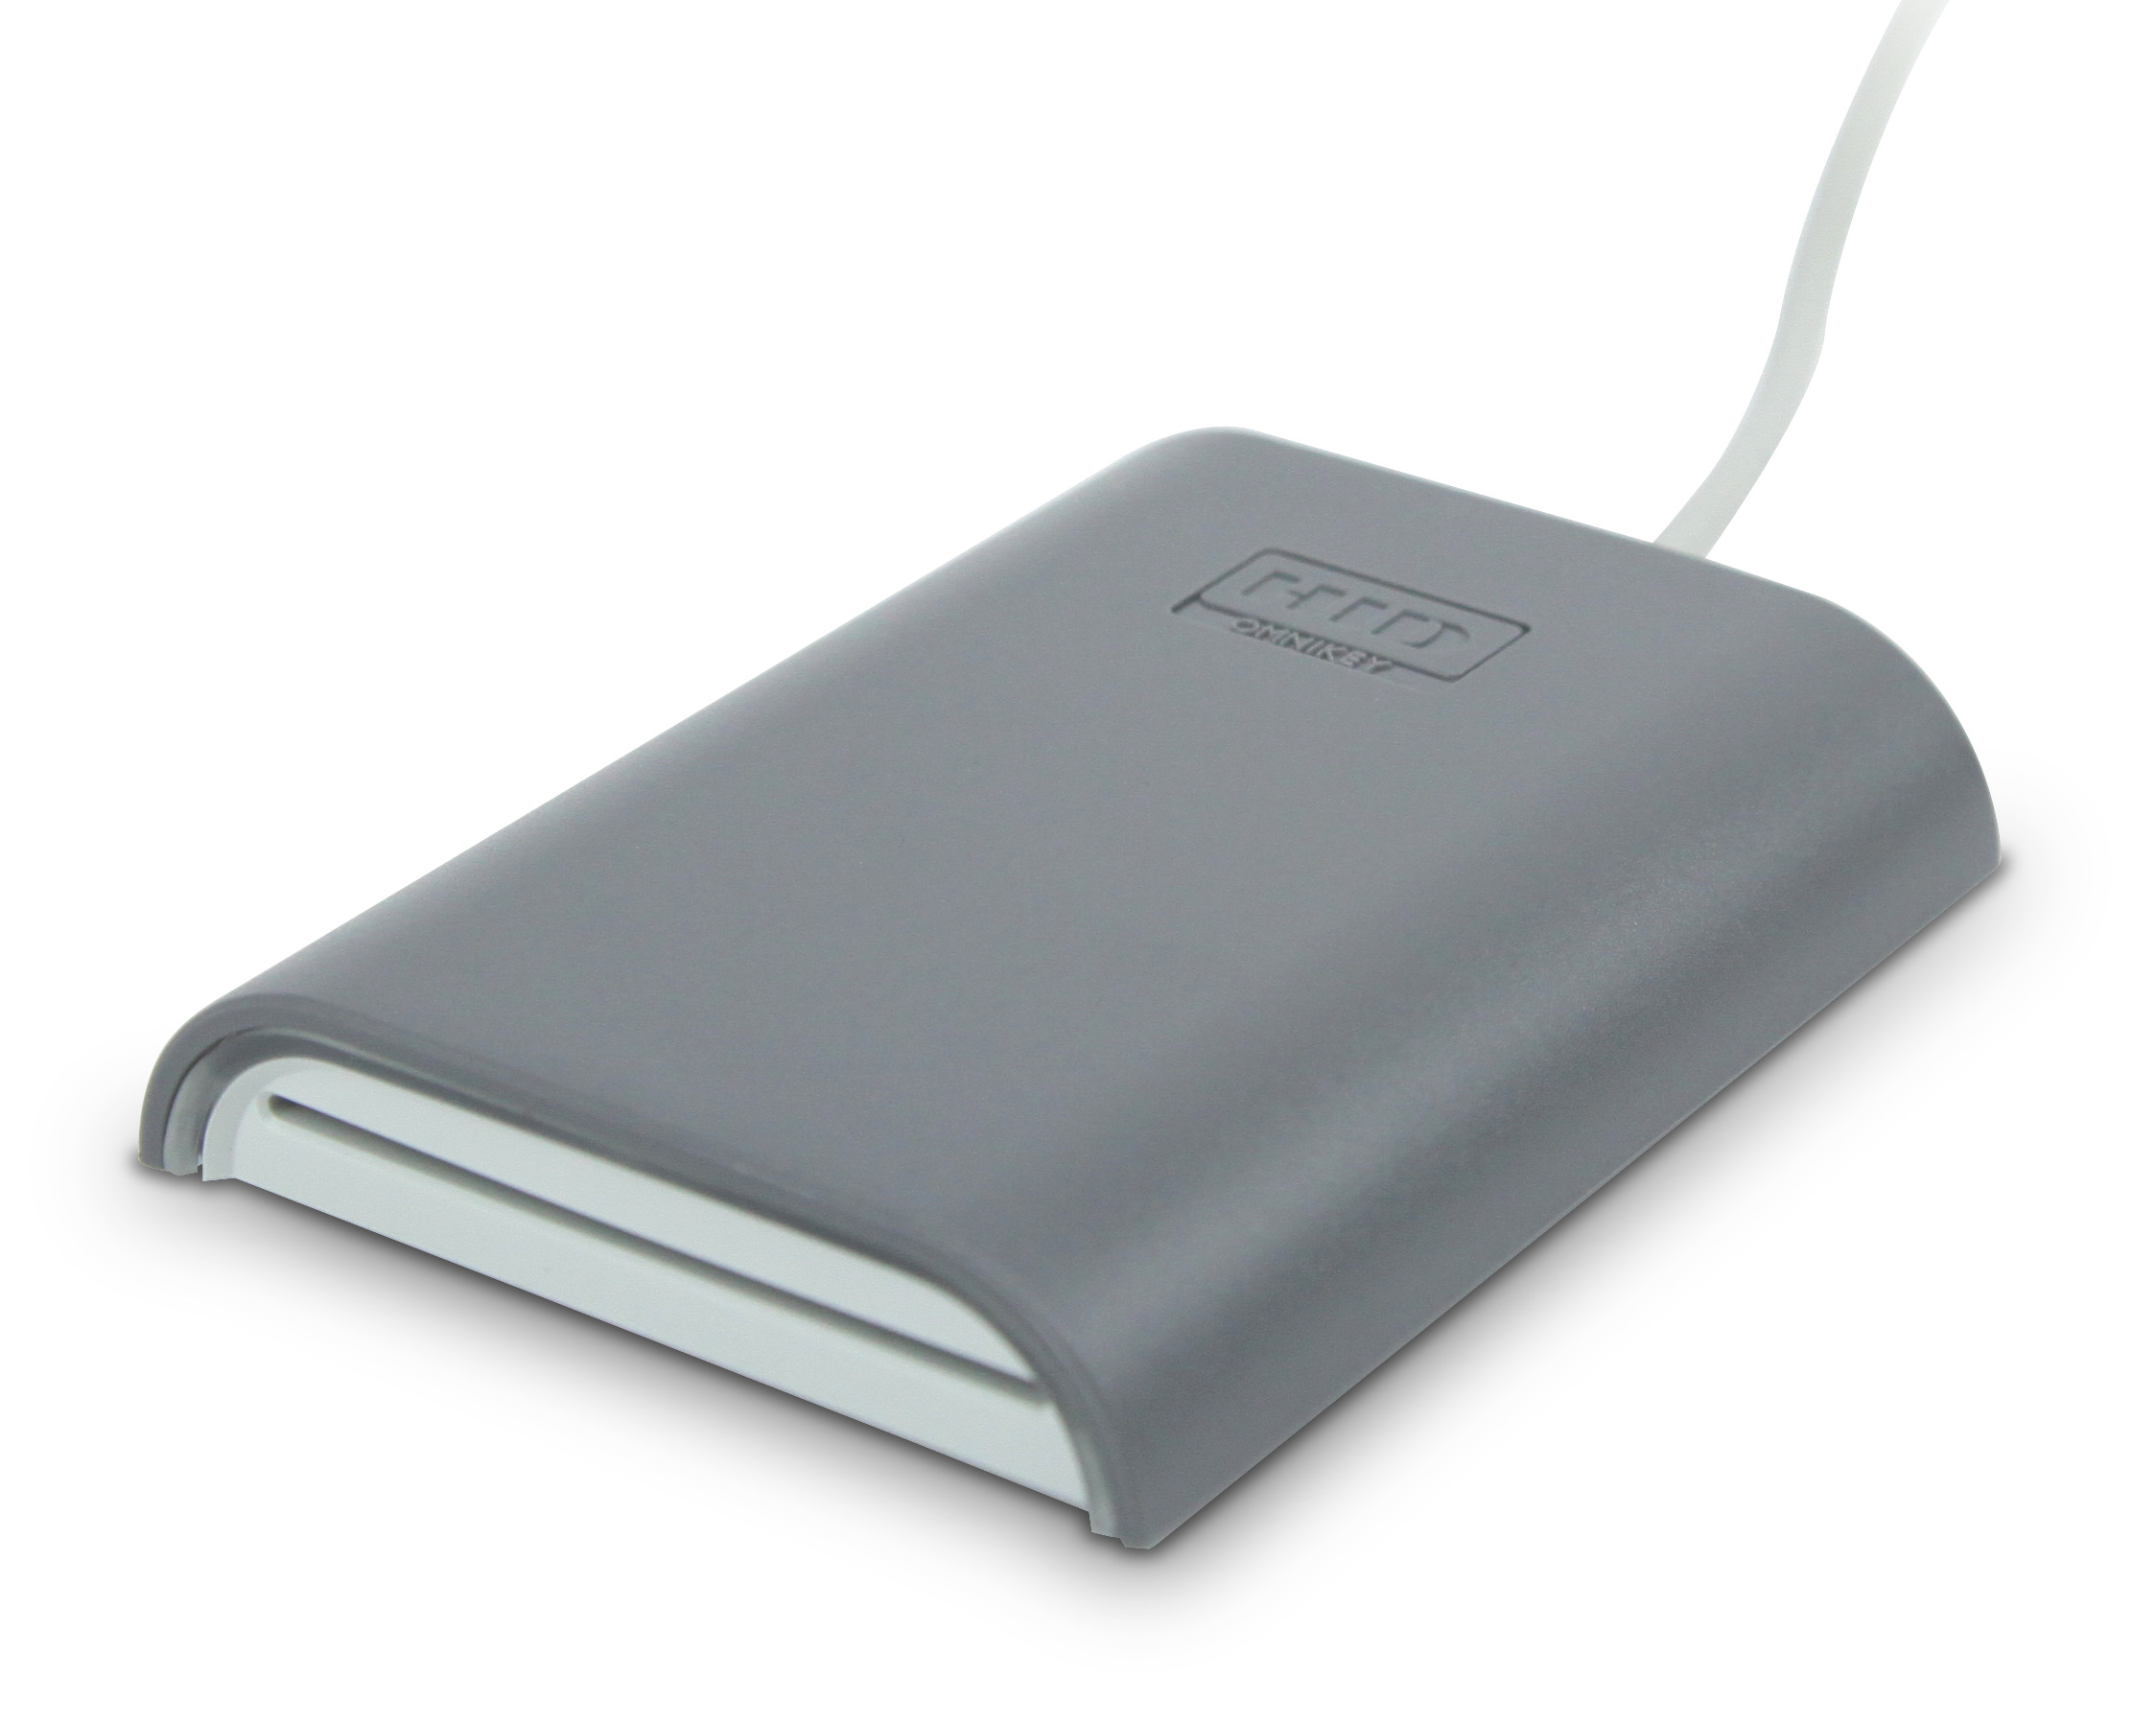 MIFARE USB reader